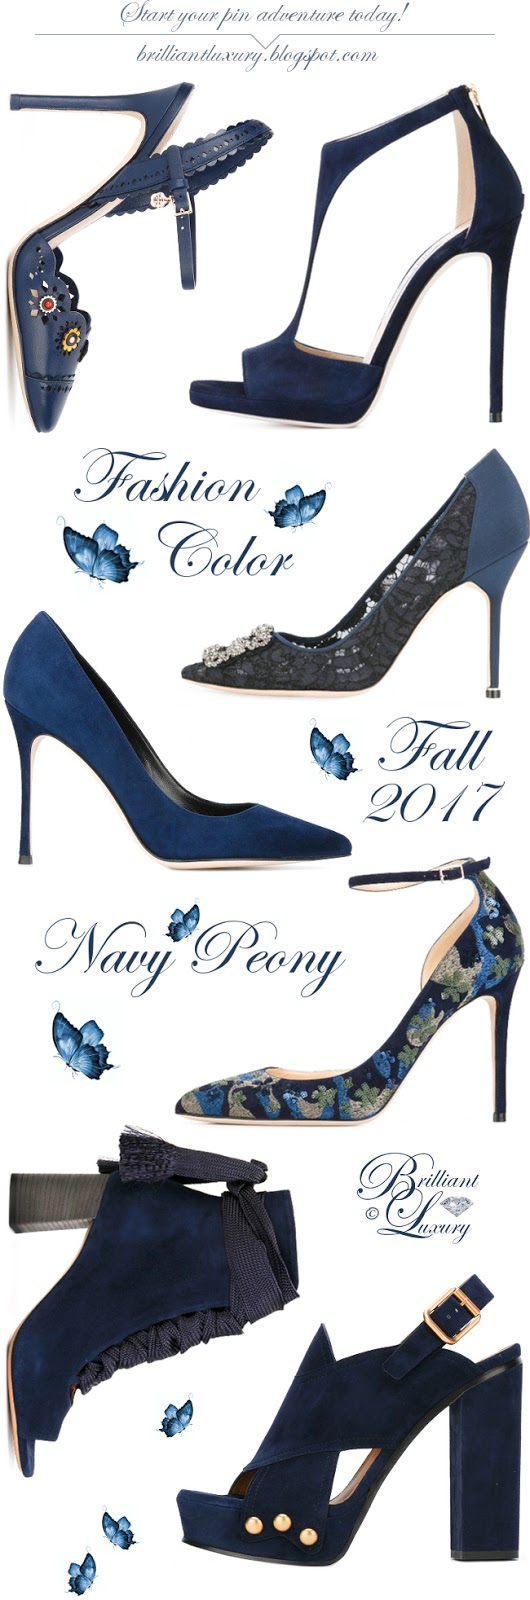 Brilliant Luxury ♦ Fashion Color Fall 2017 ~ navy peony #shoes